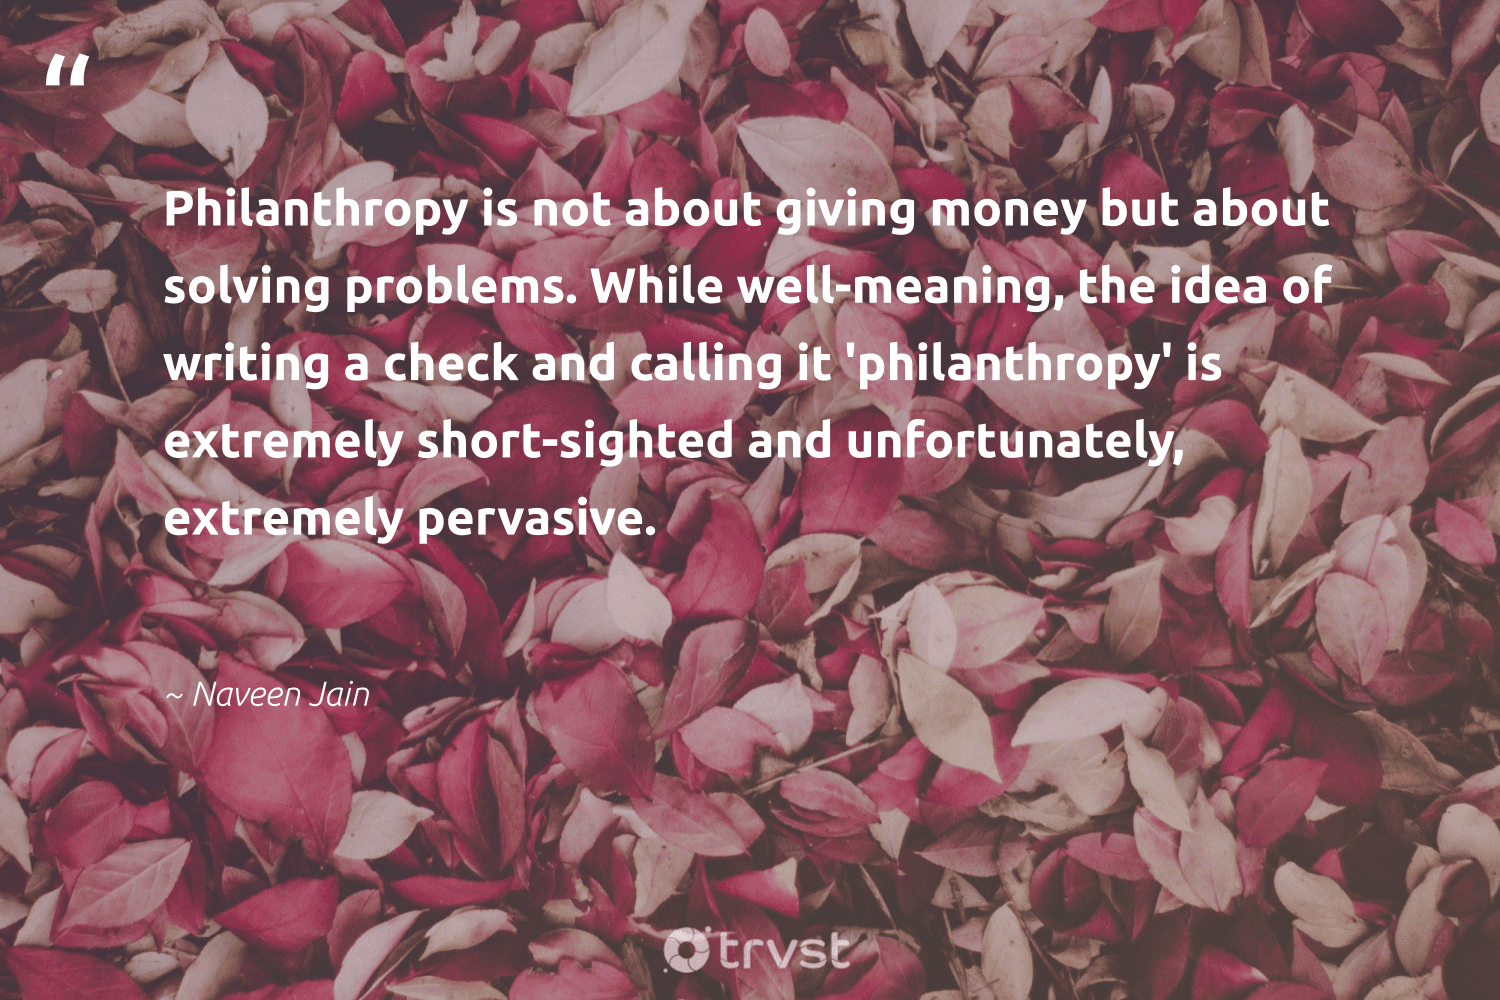 """""""Philanthropy is not about giving money but about solving problems. While well-meaning, the idea of writing a check and calling it 'philanthropy' is extremely short-sighted and unfortunately, extremely pervasive.""""  - Naveen Jain #trvst #quotes #philanthropy #philanthropic #giveforthefuture #changemakers #takeaction #itscooltobekind #togetherwecan #gogreen #collectiveaction #dosomething"""